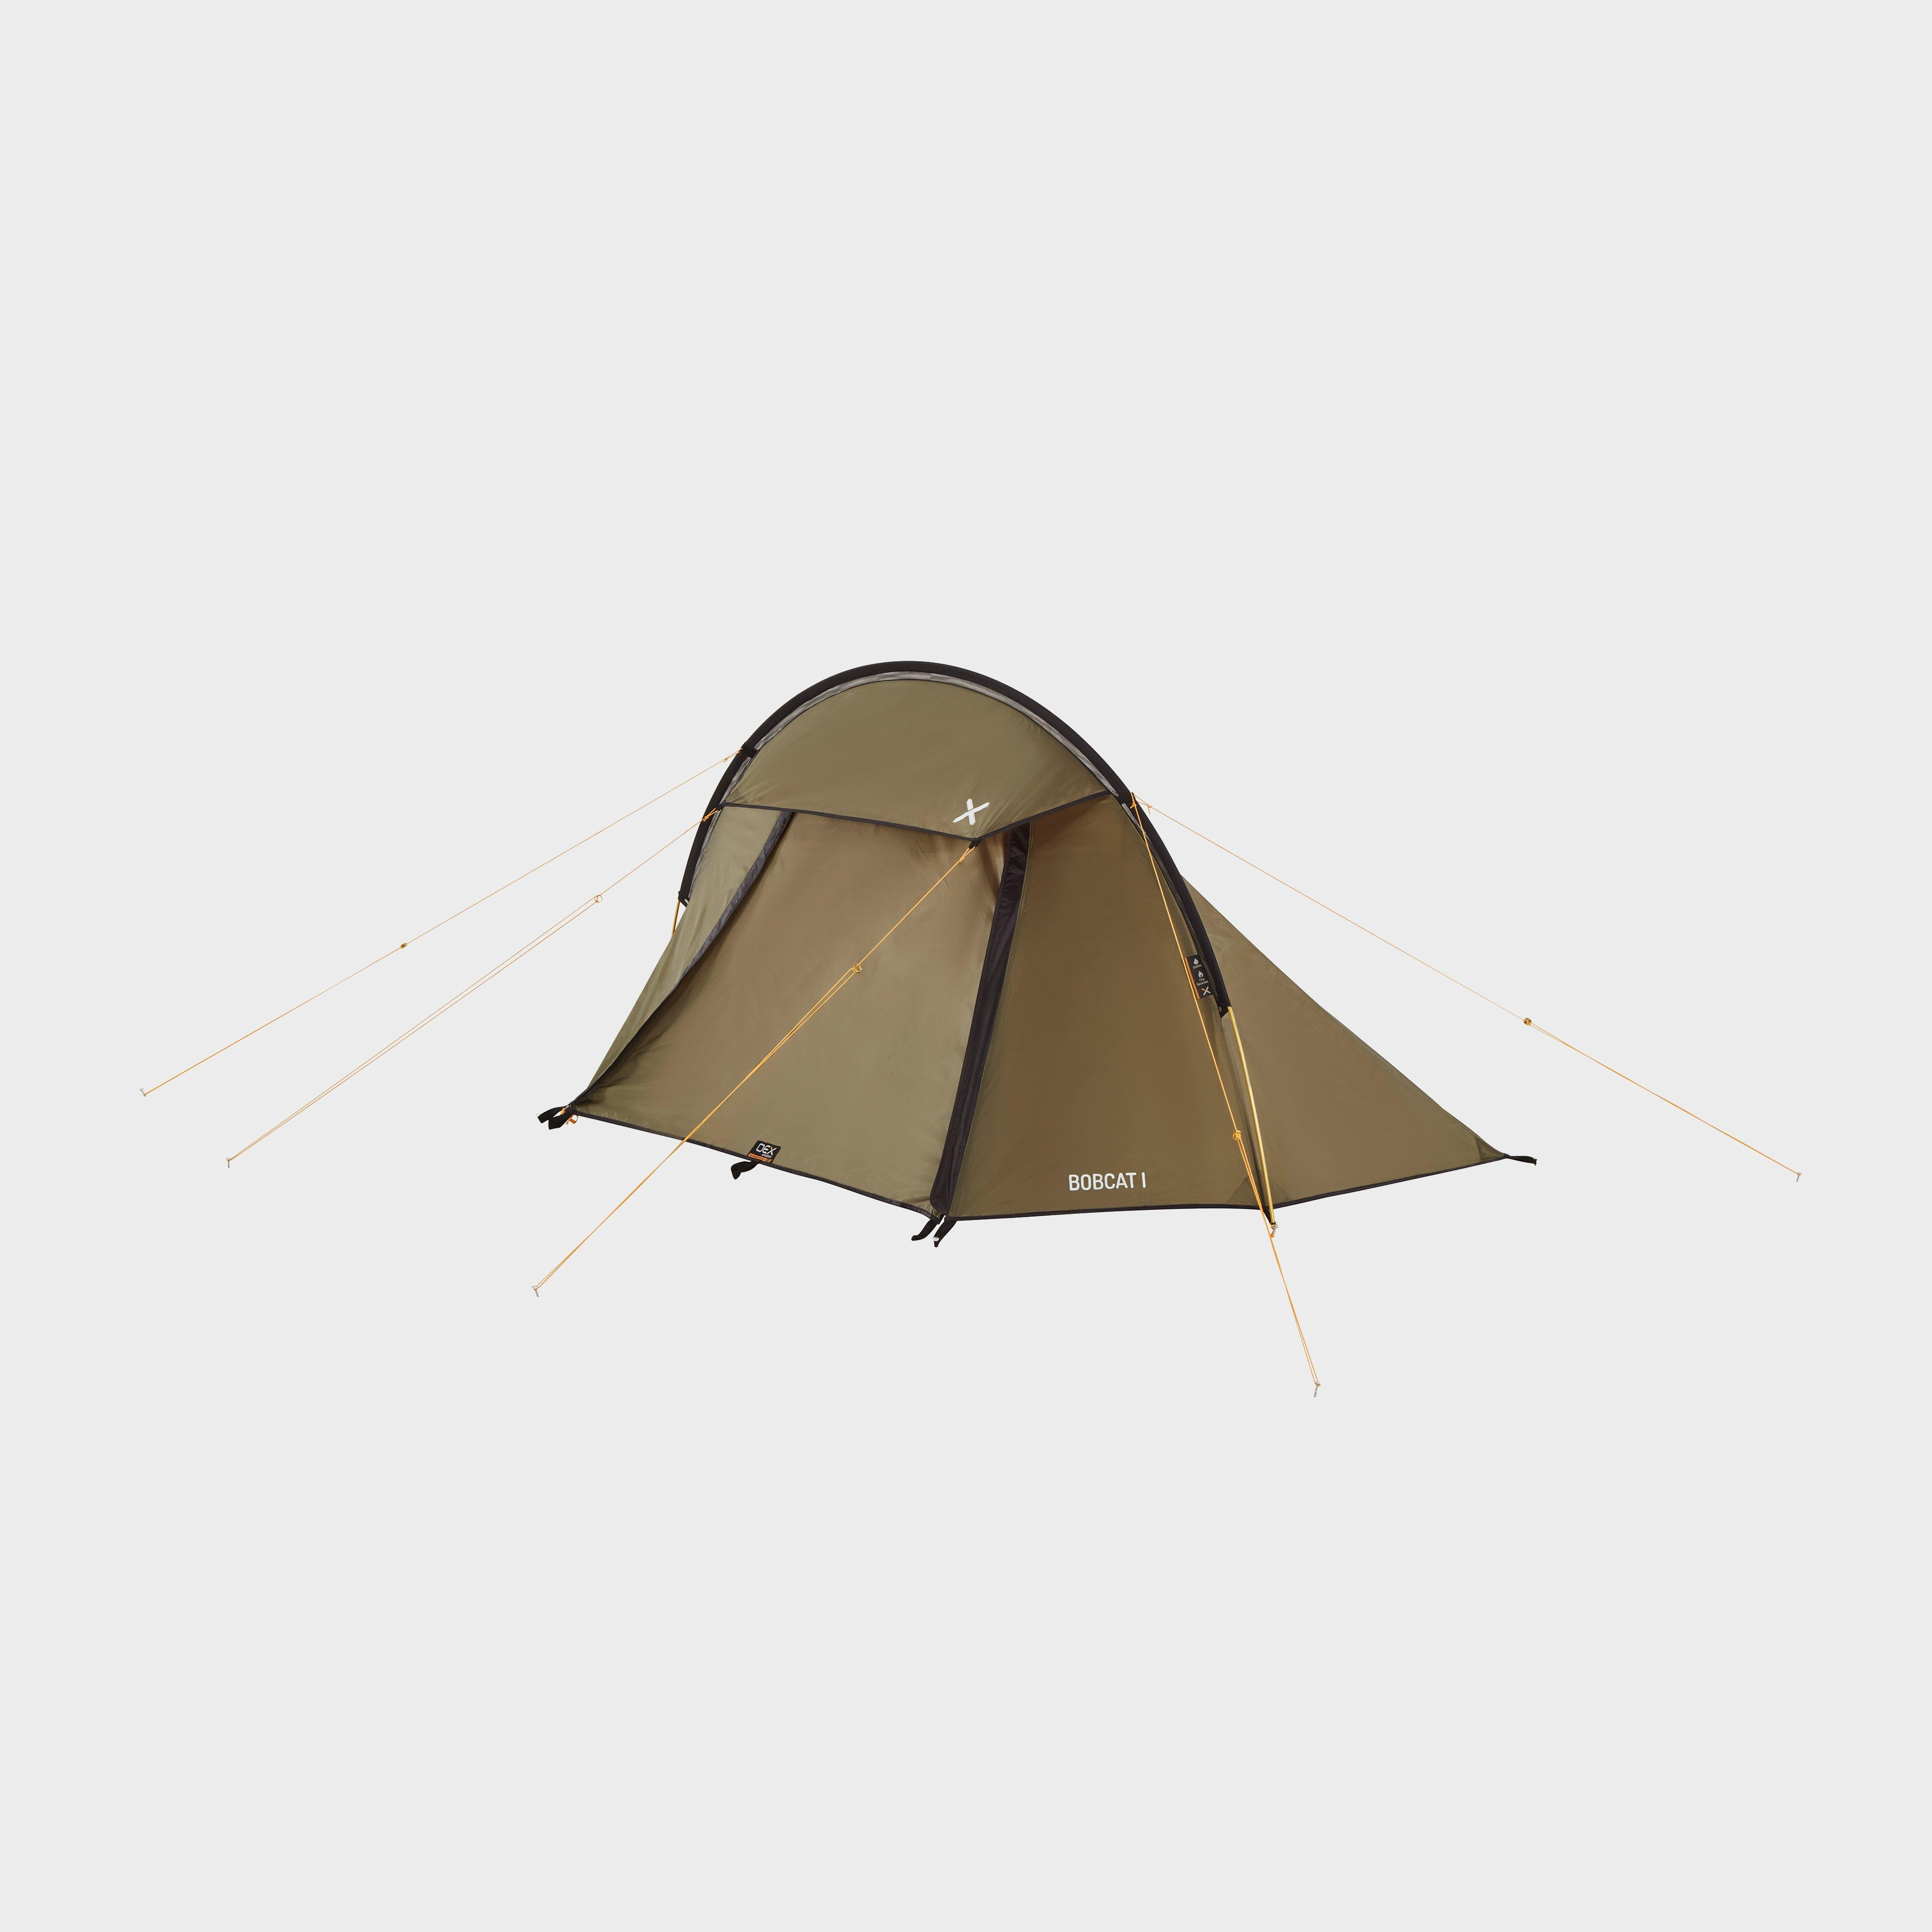 OEX Bobcat 1 Person Tent